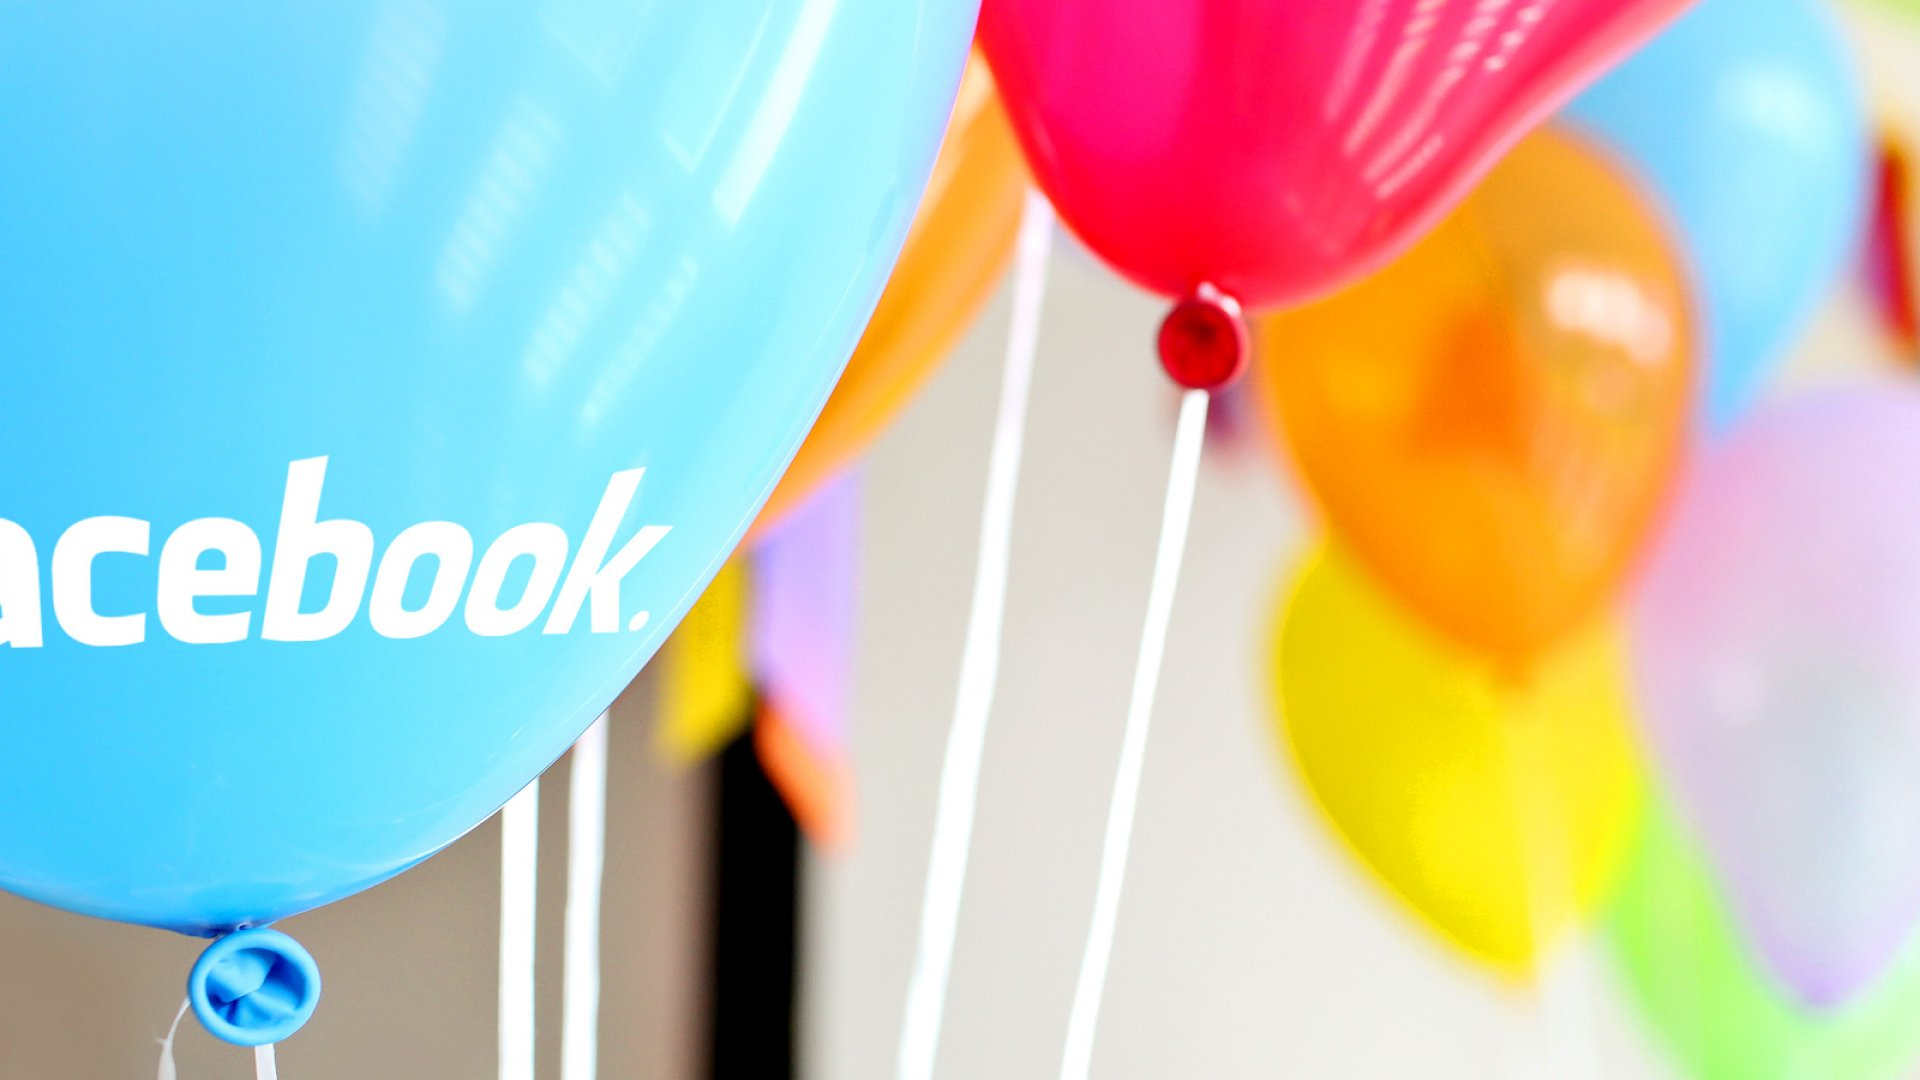 Happy Birthday, Facebook! A Look Back at 10 Years